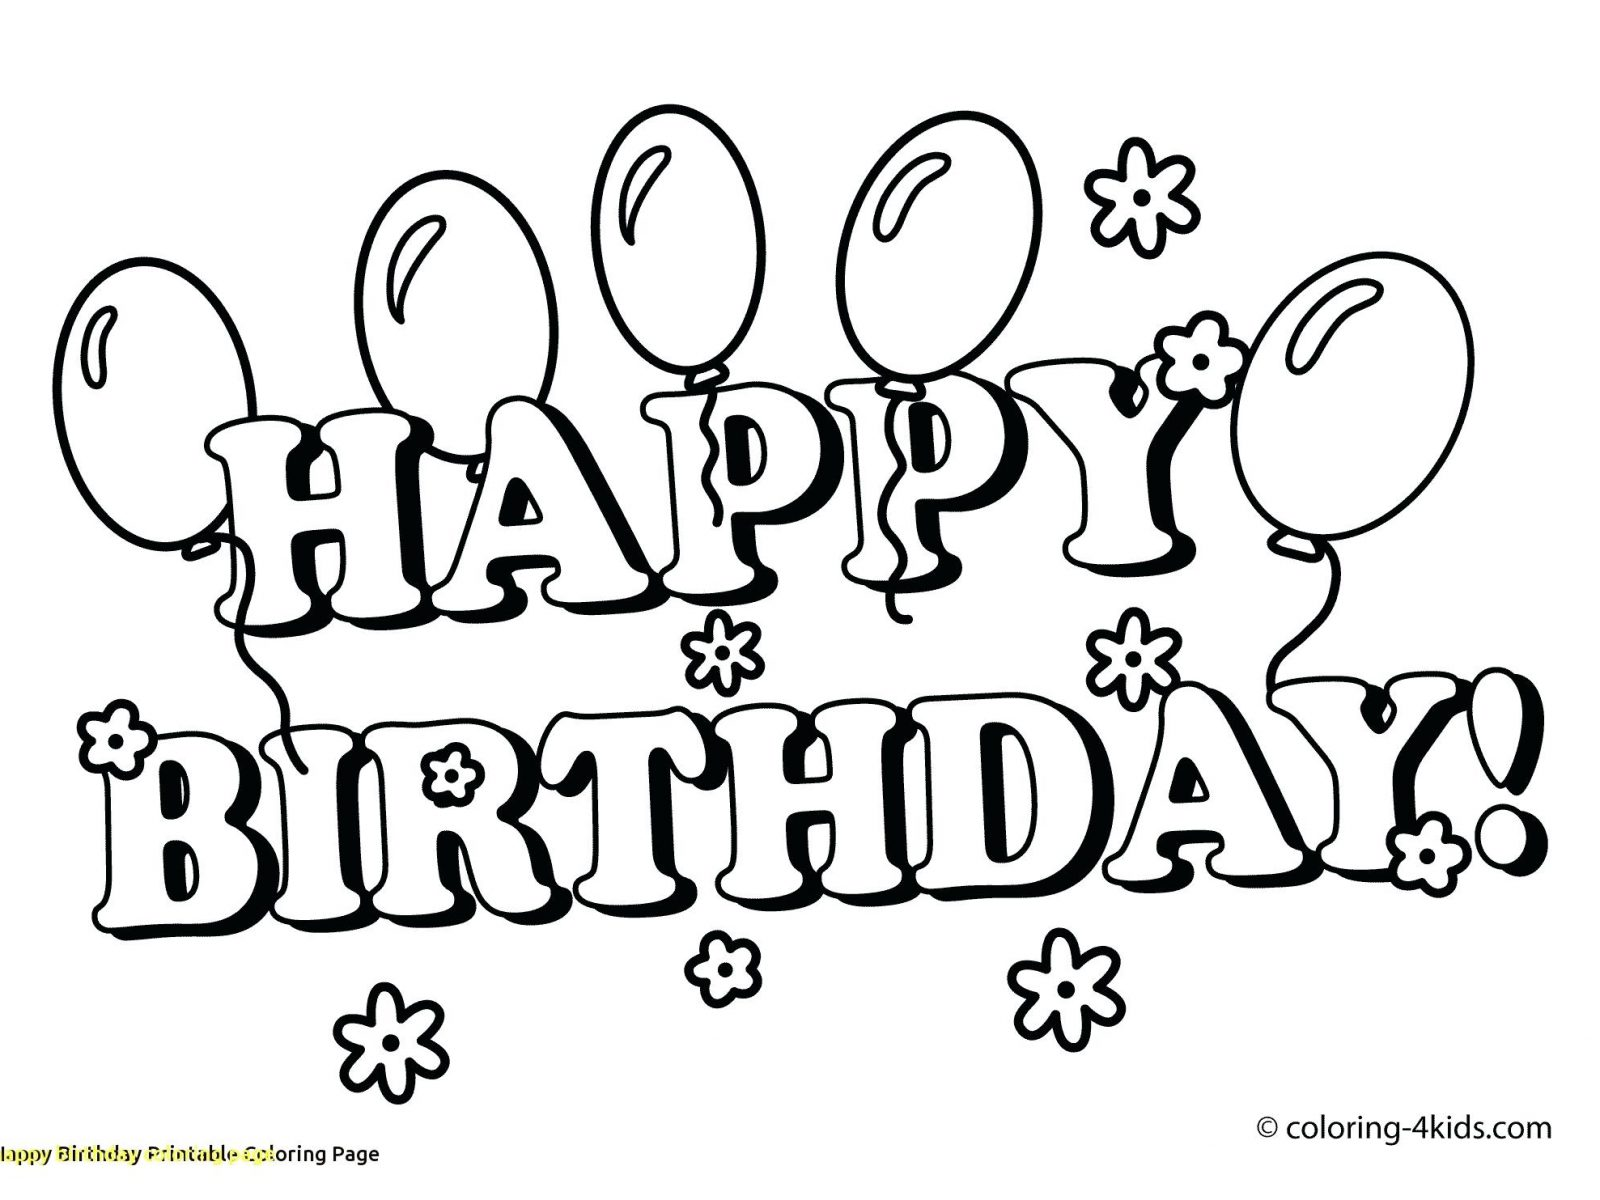 happy birthday mom coloring page ; happy-birthday-coloring-pages-for-kids-page-with-balloons-pictures-of-turkeys-fearsome-mom-colouring-1600x1200